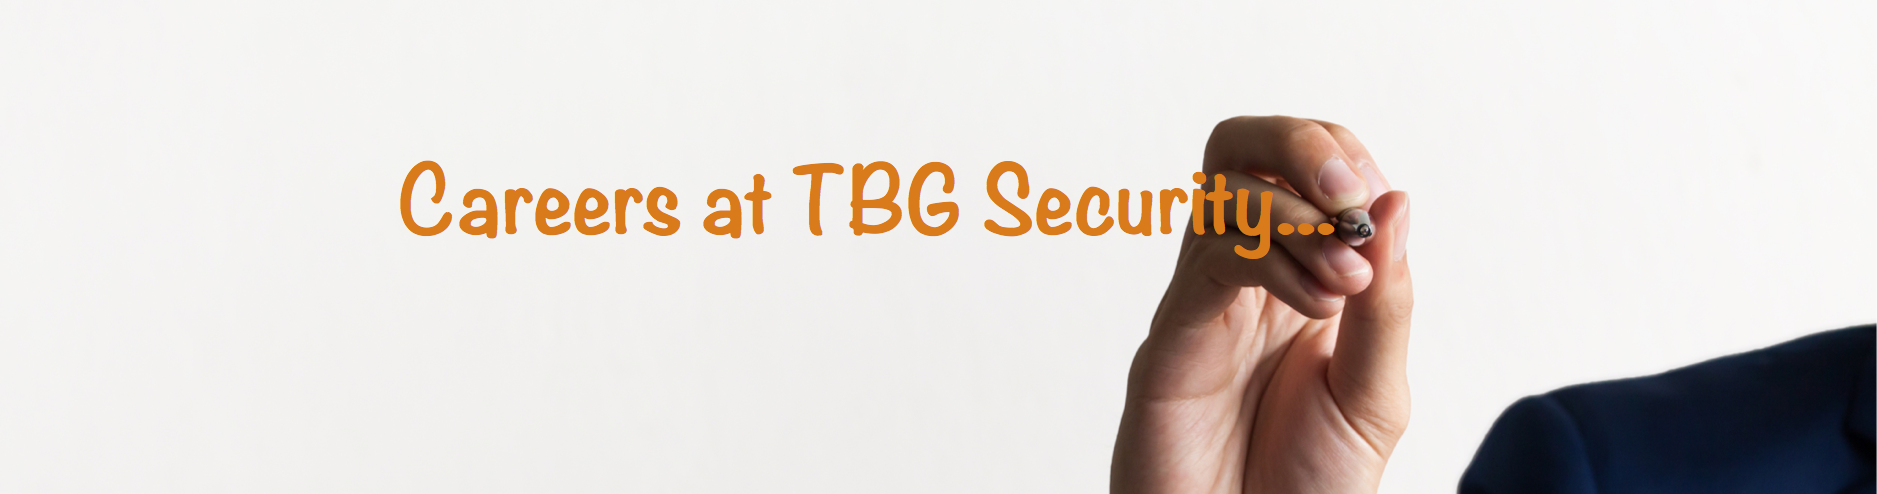 TBG-WEB-ABOUT-CAREERSX